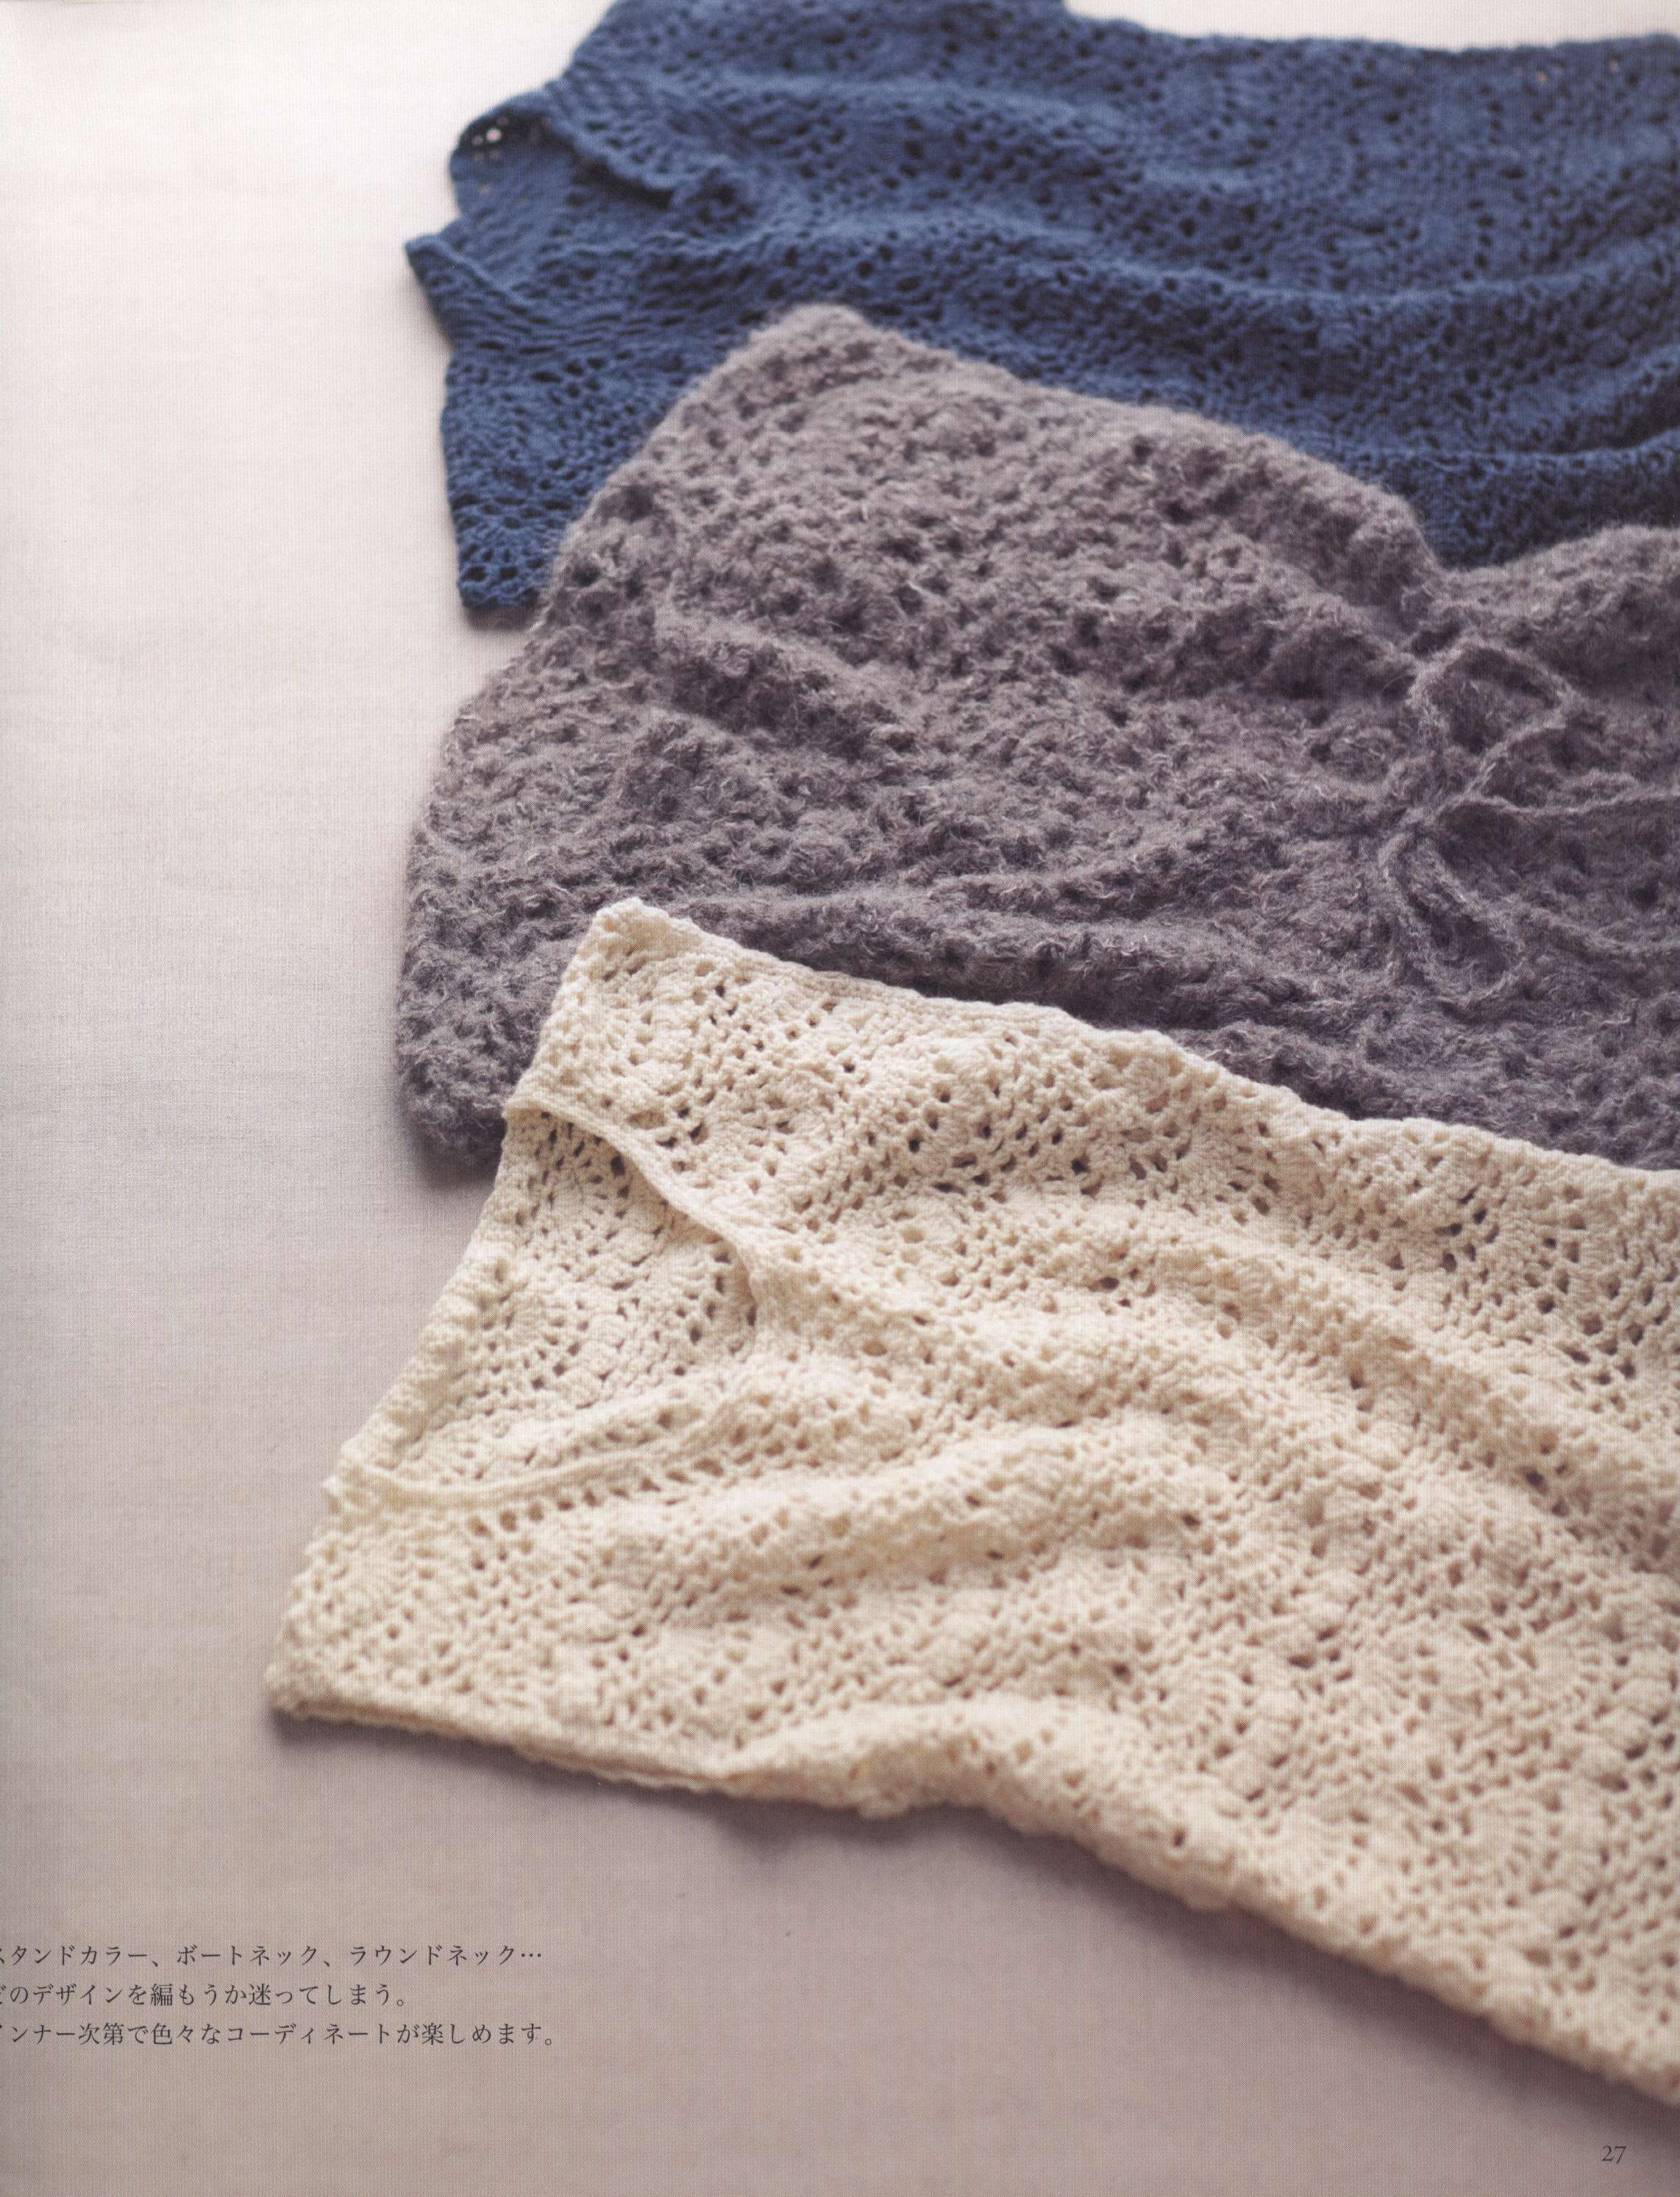 Crochet Stitch Open : Open Fan Stitch Crochet Top Pattern ? Crochet Kingdom